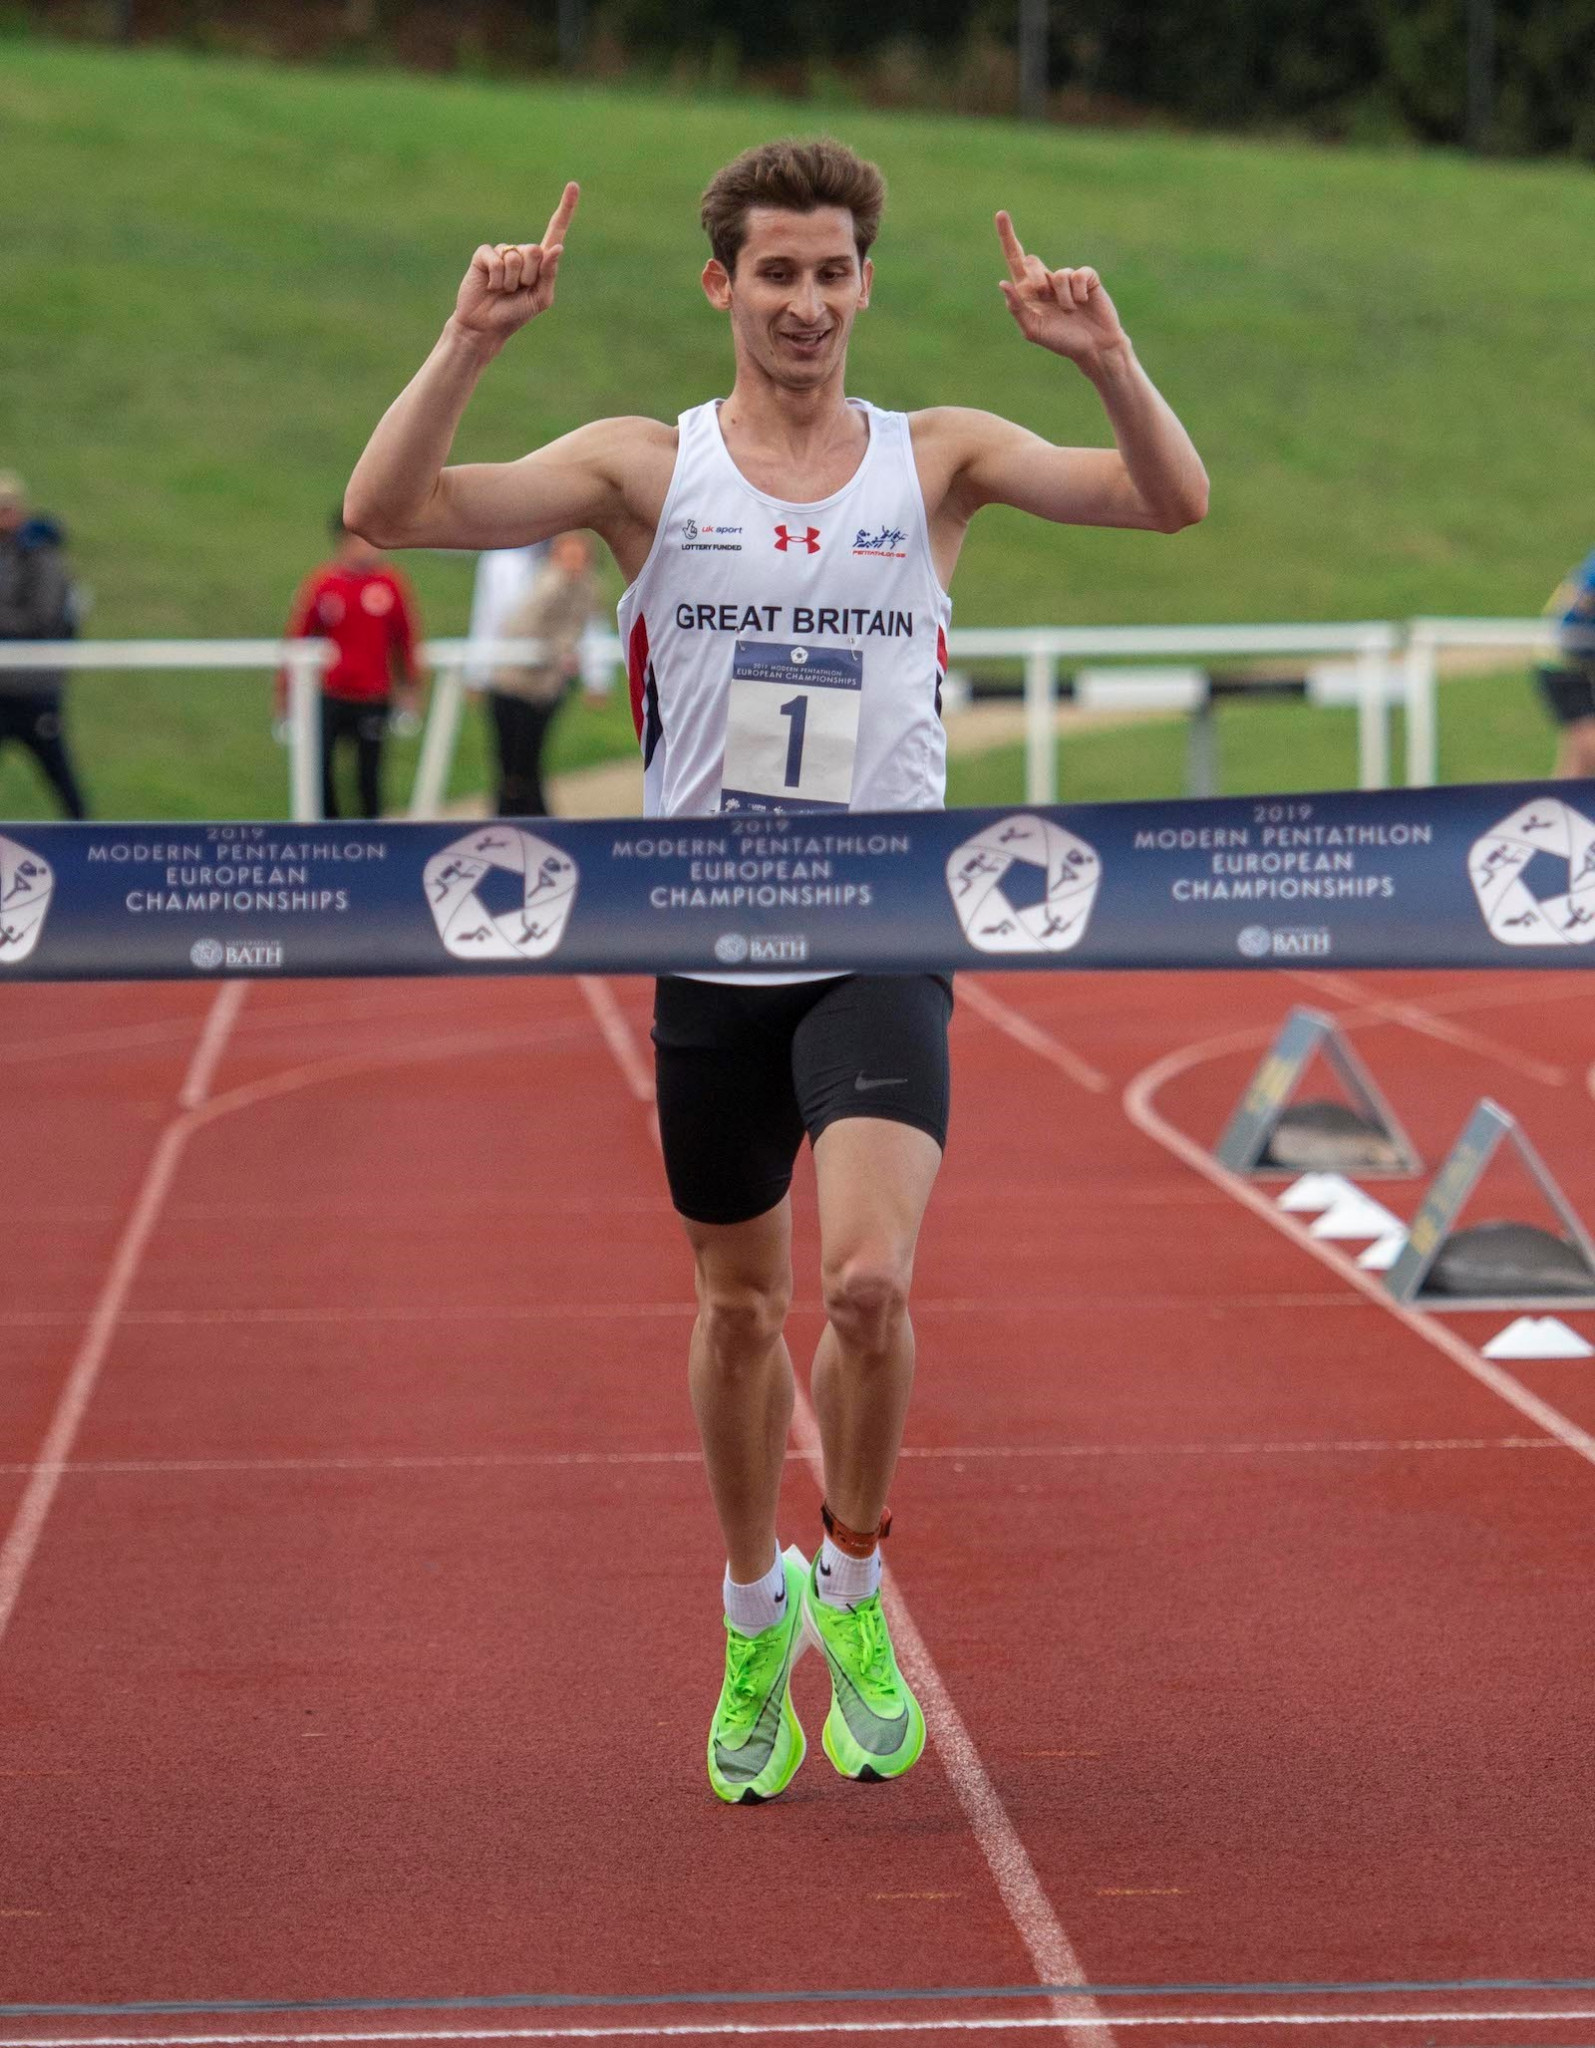 Cooke add men's European Modern Pentathlon Championships to world title